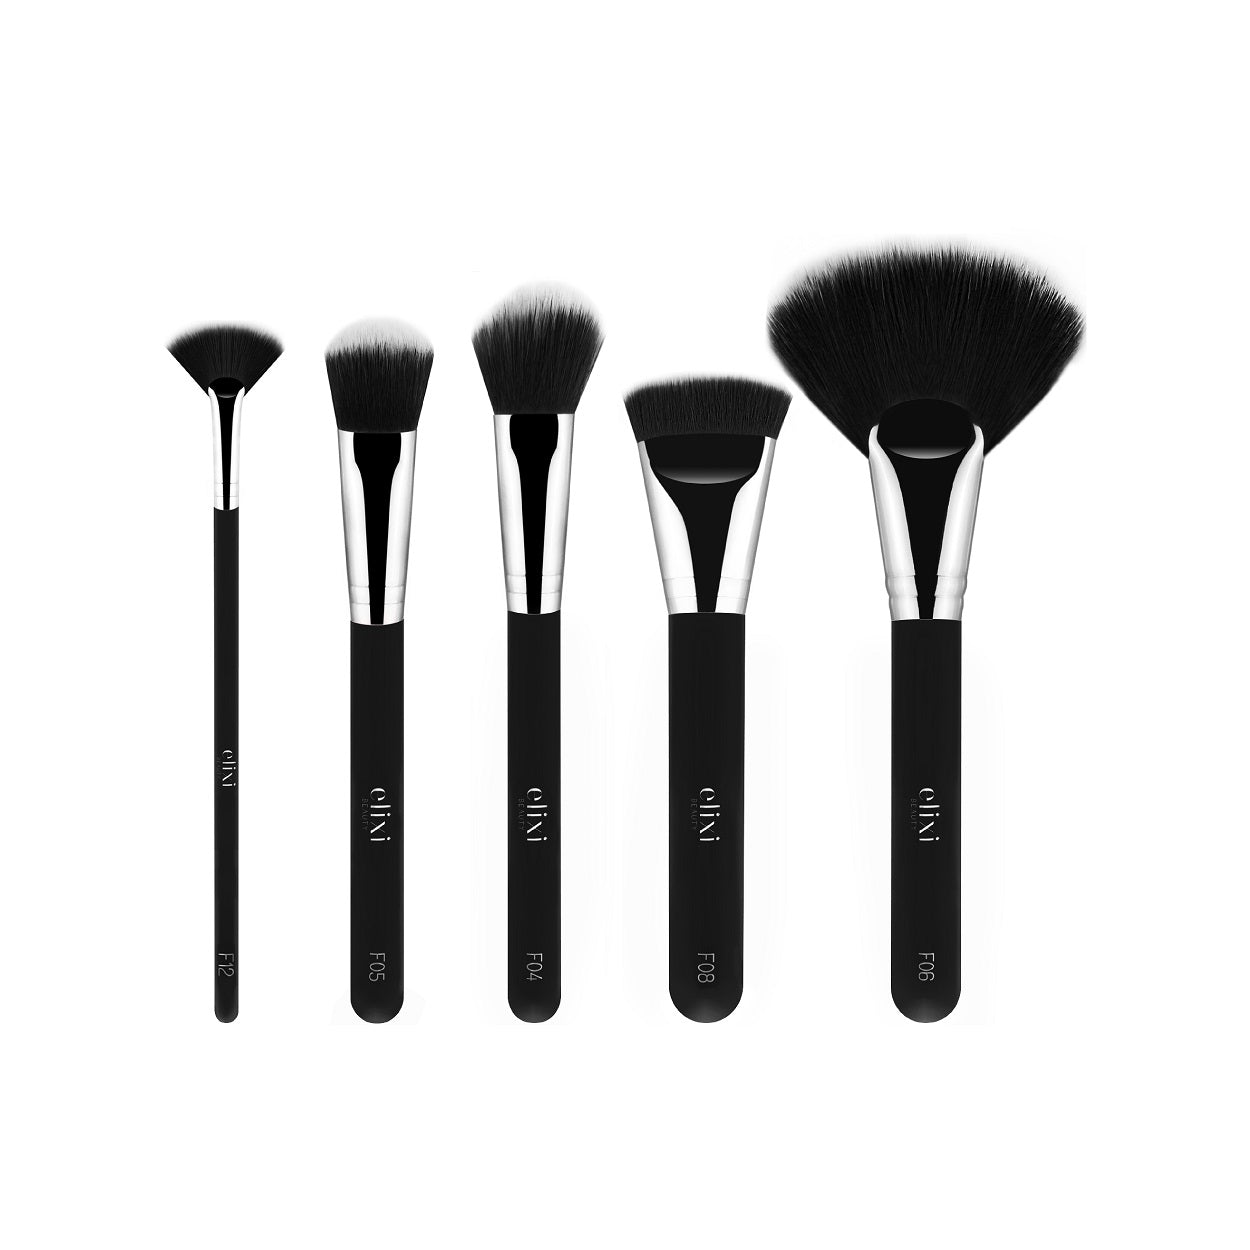 Contour and Highlight Brush Set - 5 Brushes